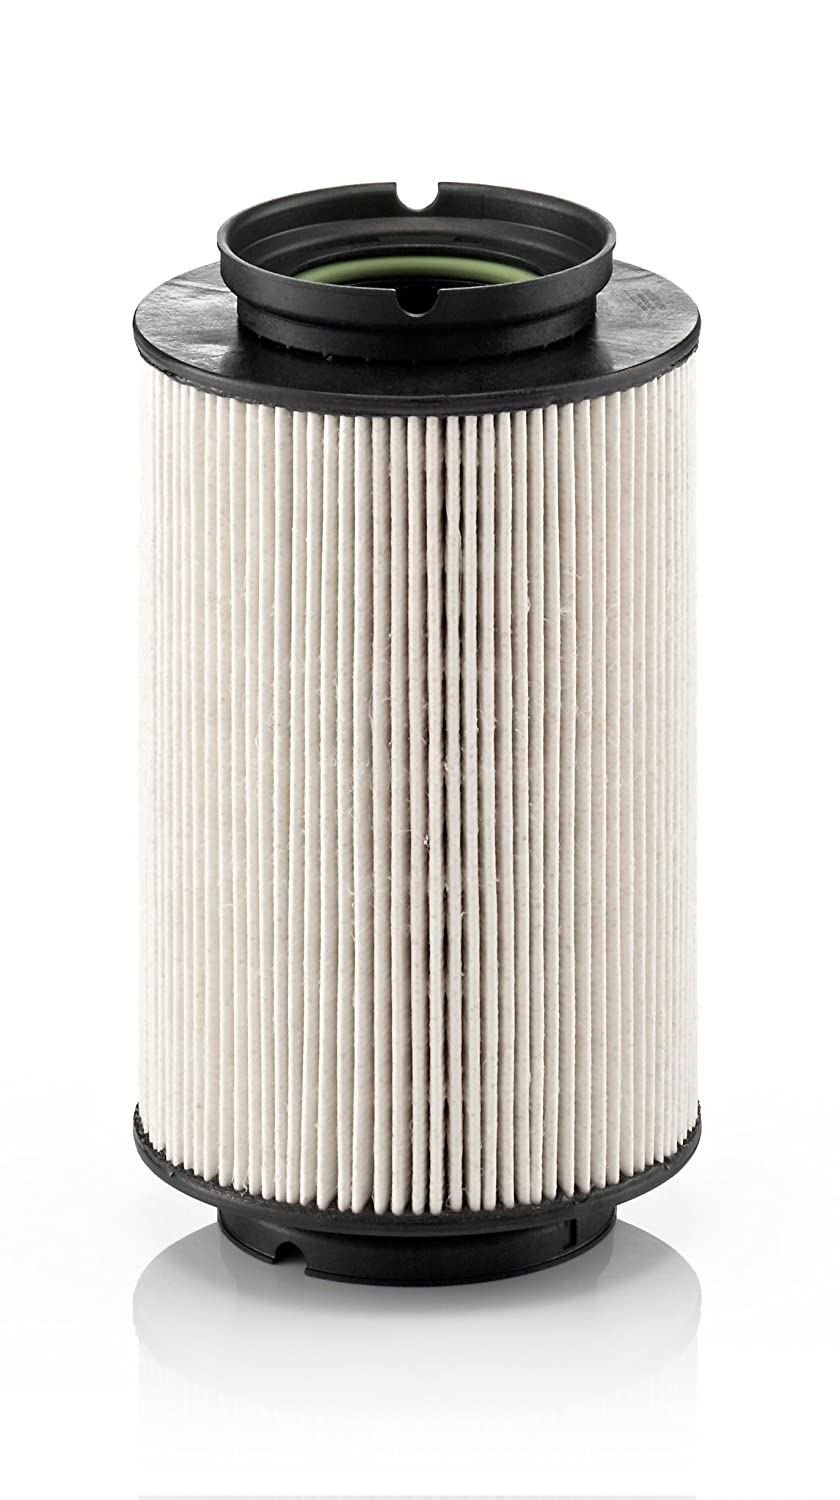 WRG-6242] 2009 Vw Jetta Tdi Fuel Filter Replacement